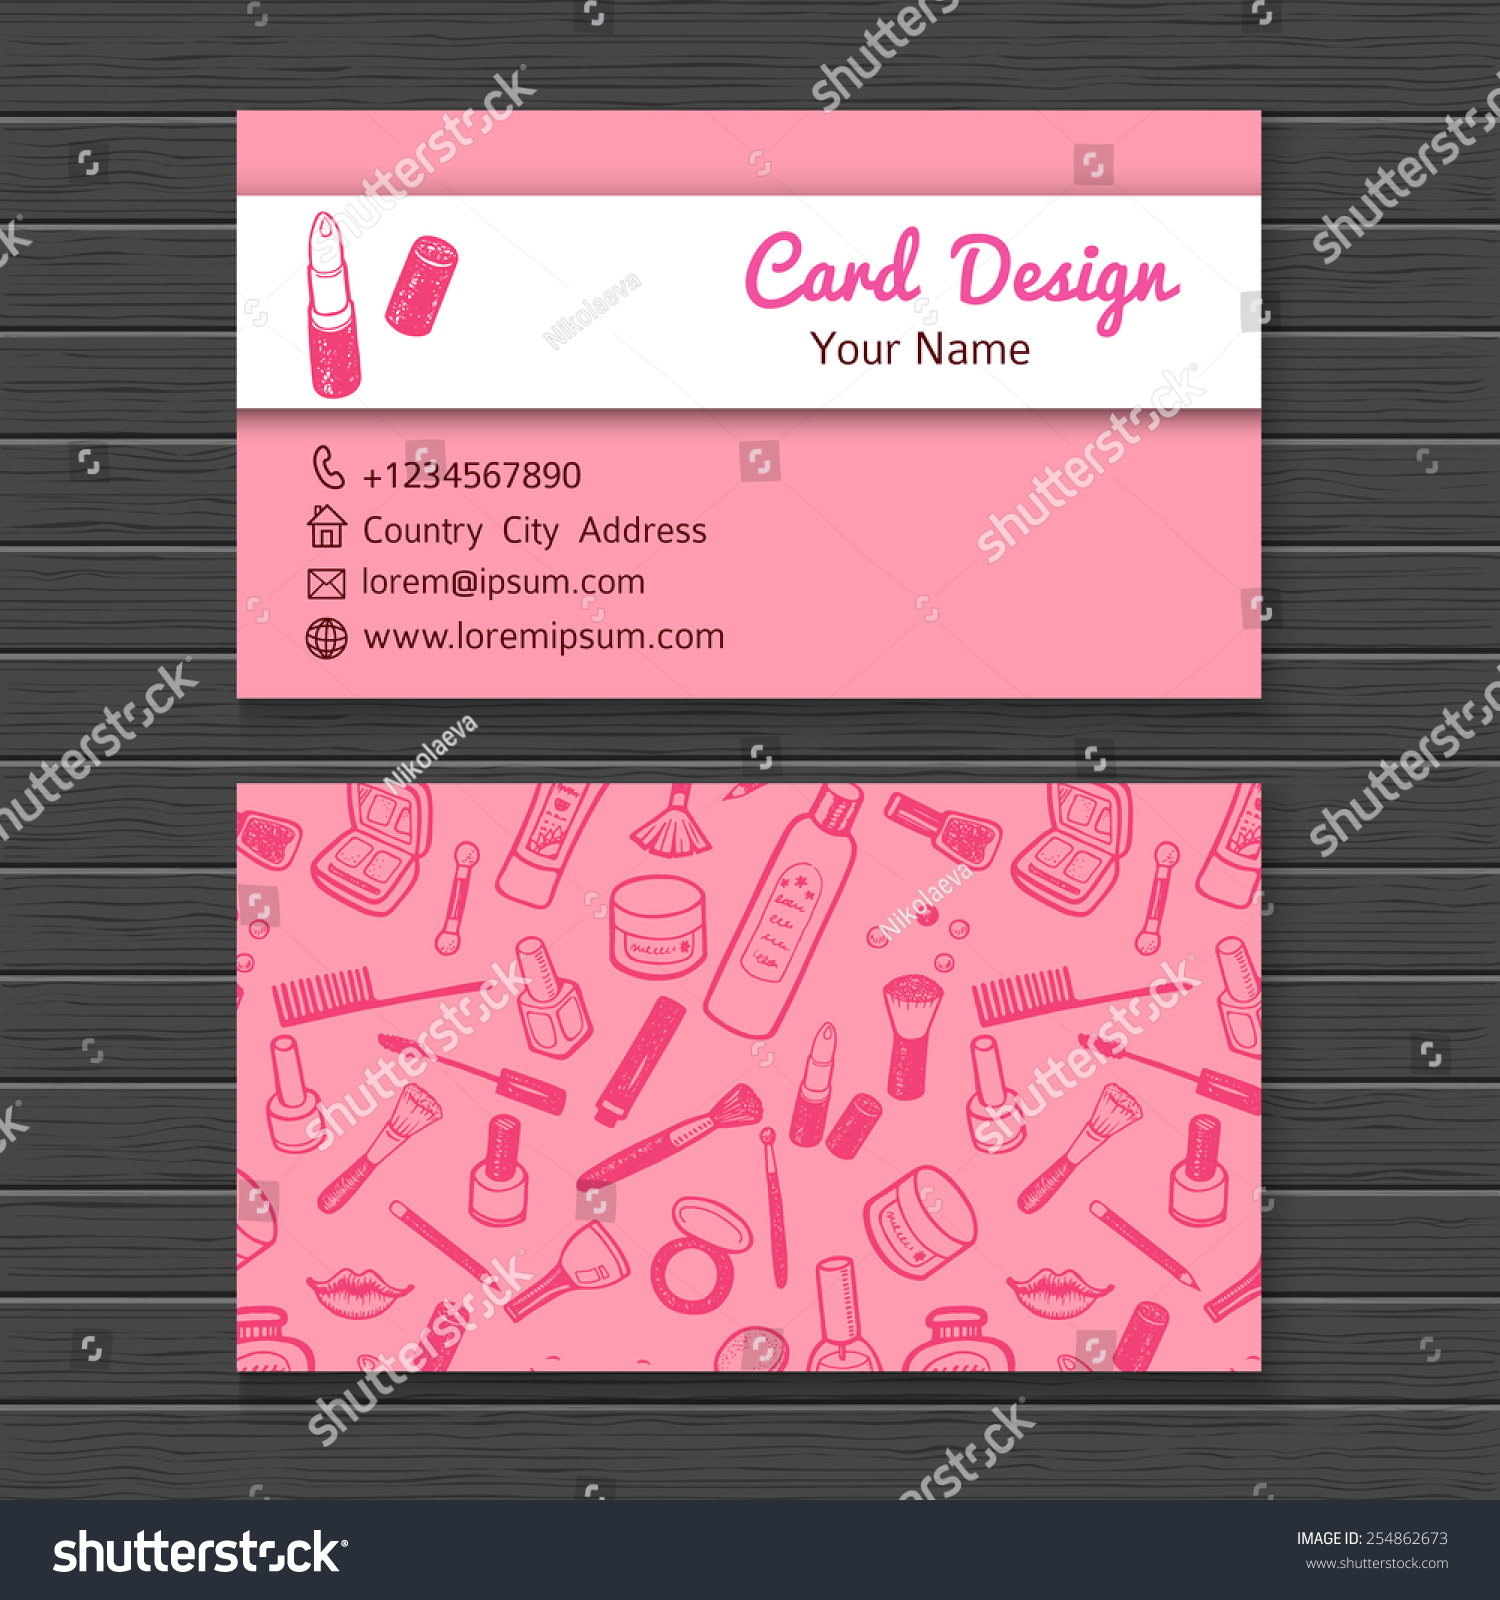 Make artist business card template stock vector 2018 254862673 make up artist business card template accmission Image collections